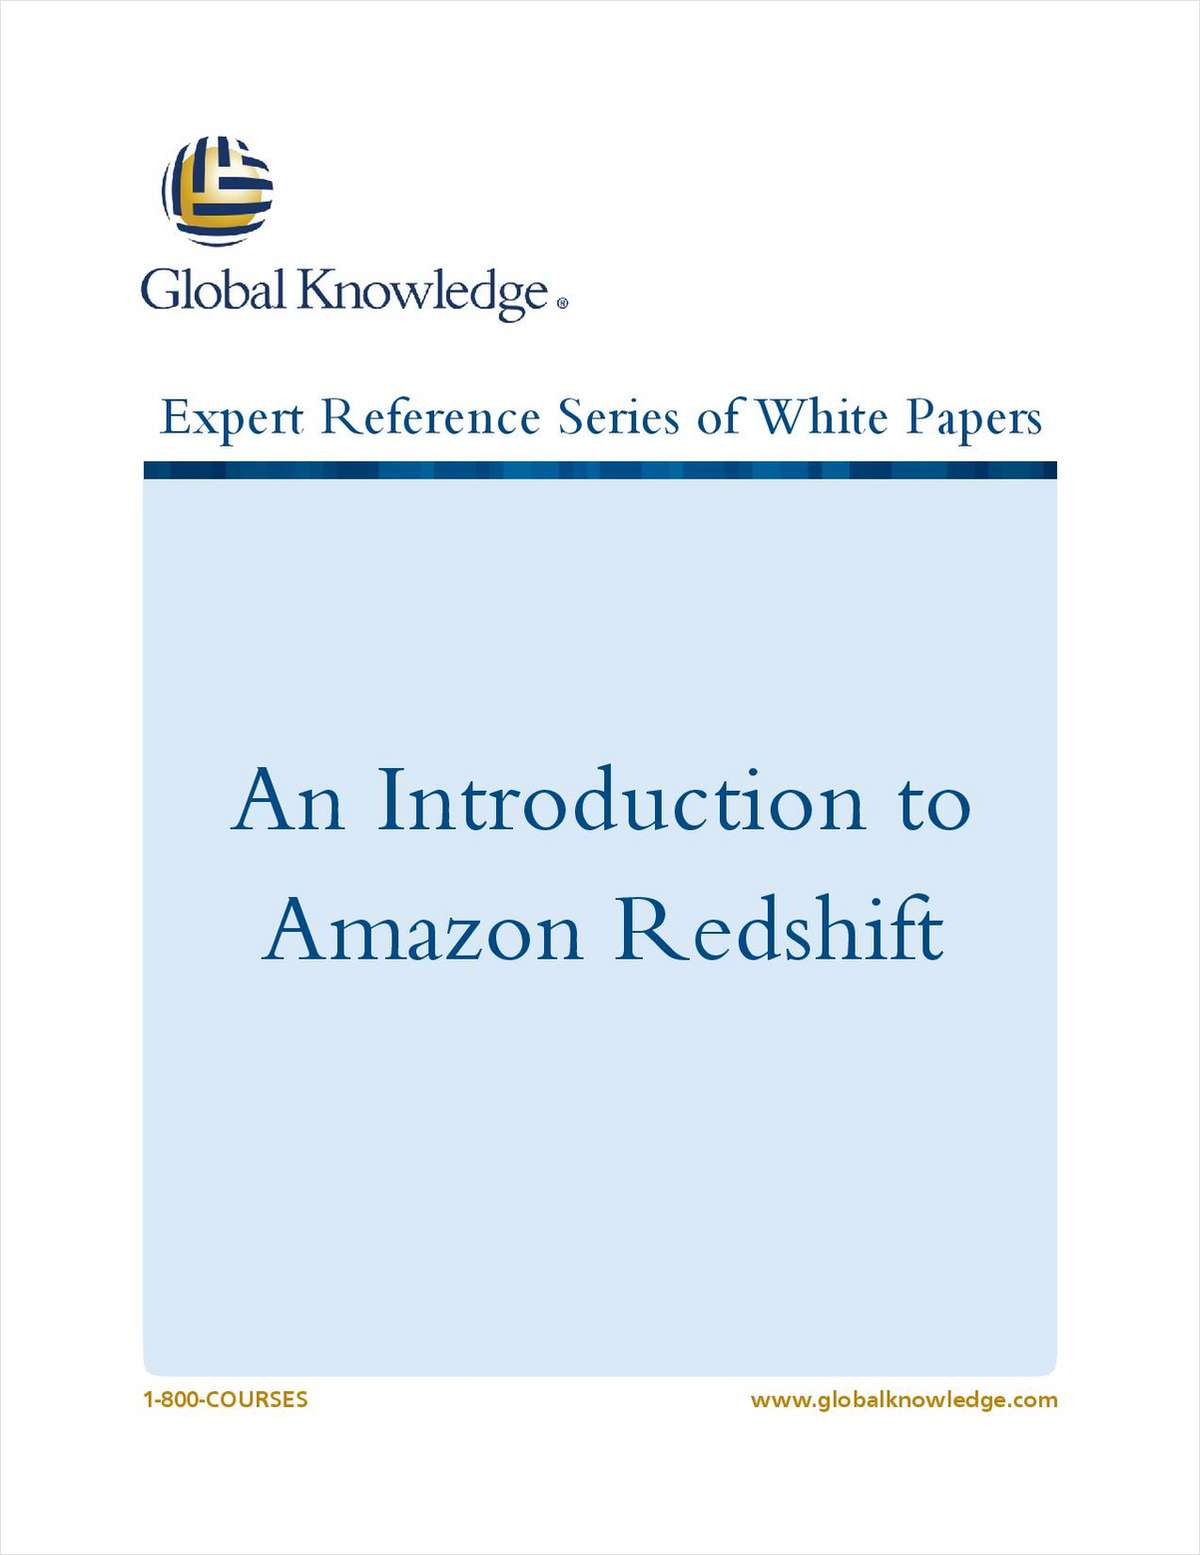 An Introduction to Amazon Redshift